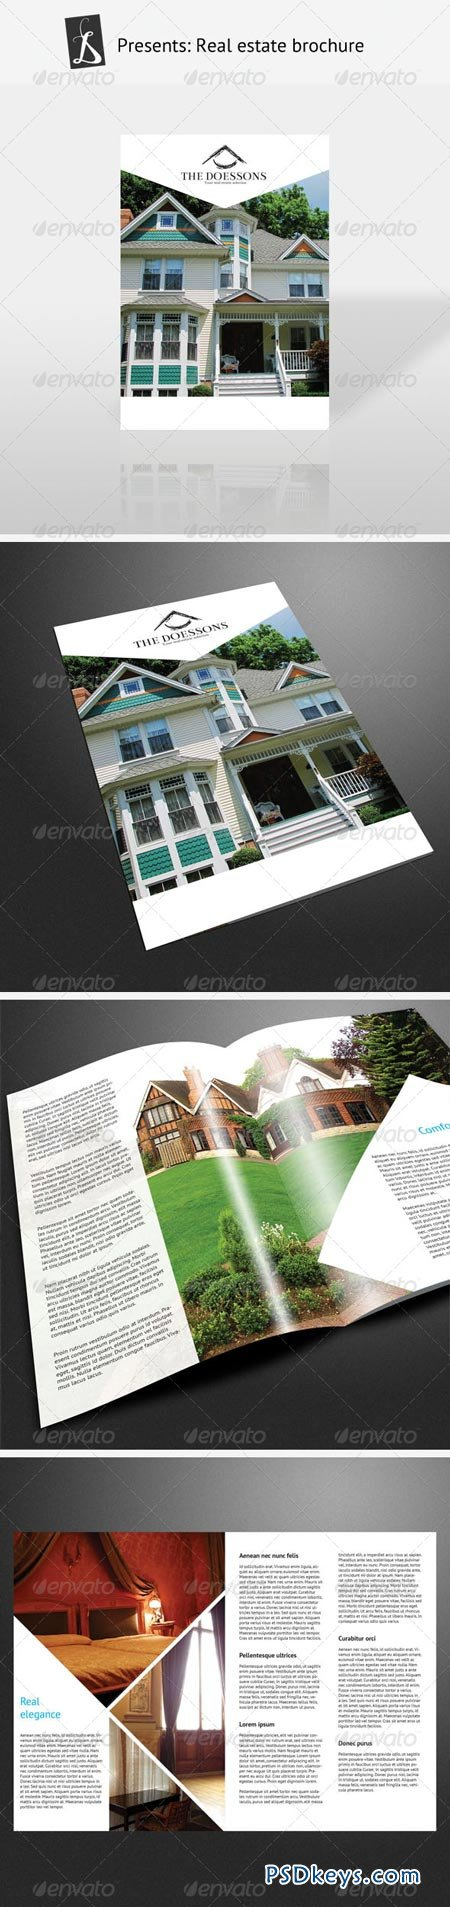 Real Estate Brochure 167850